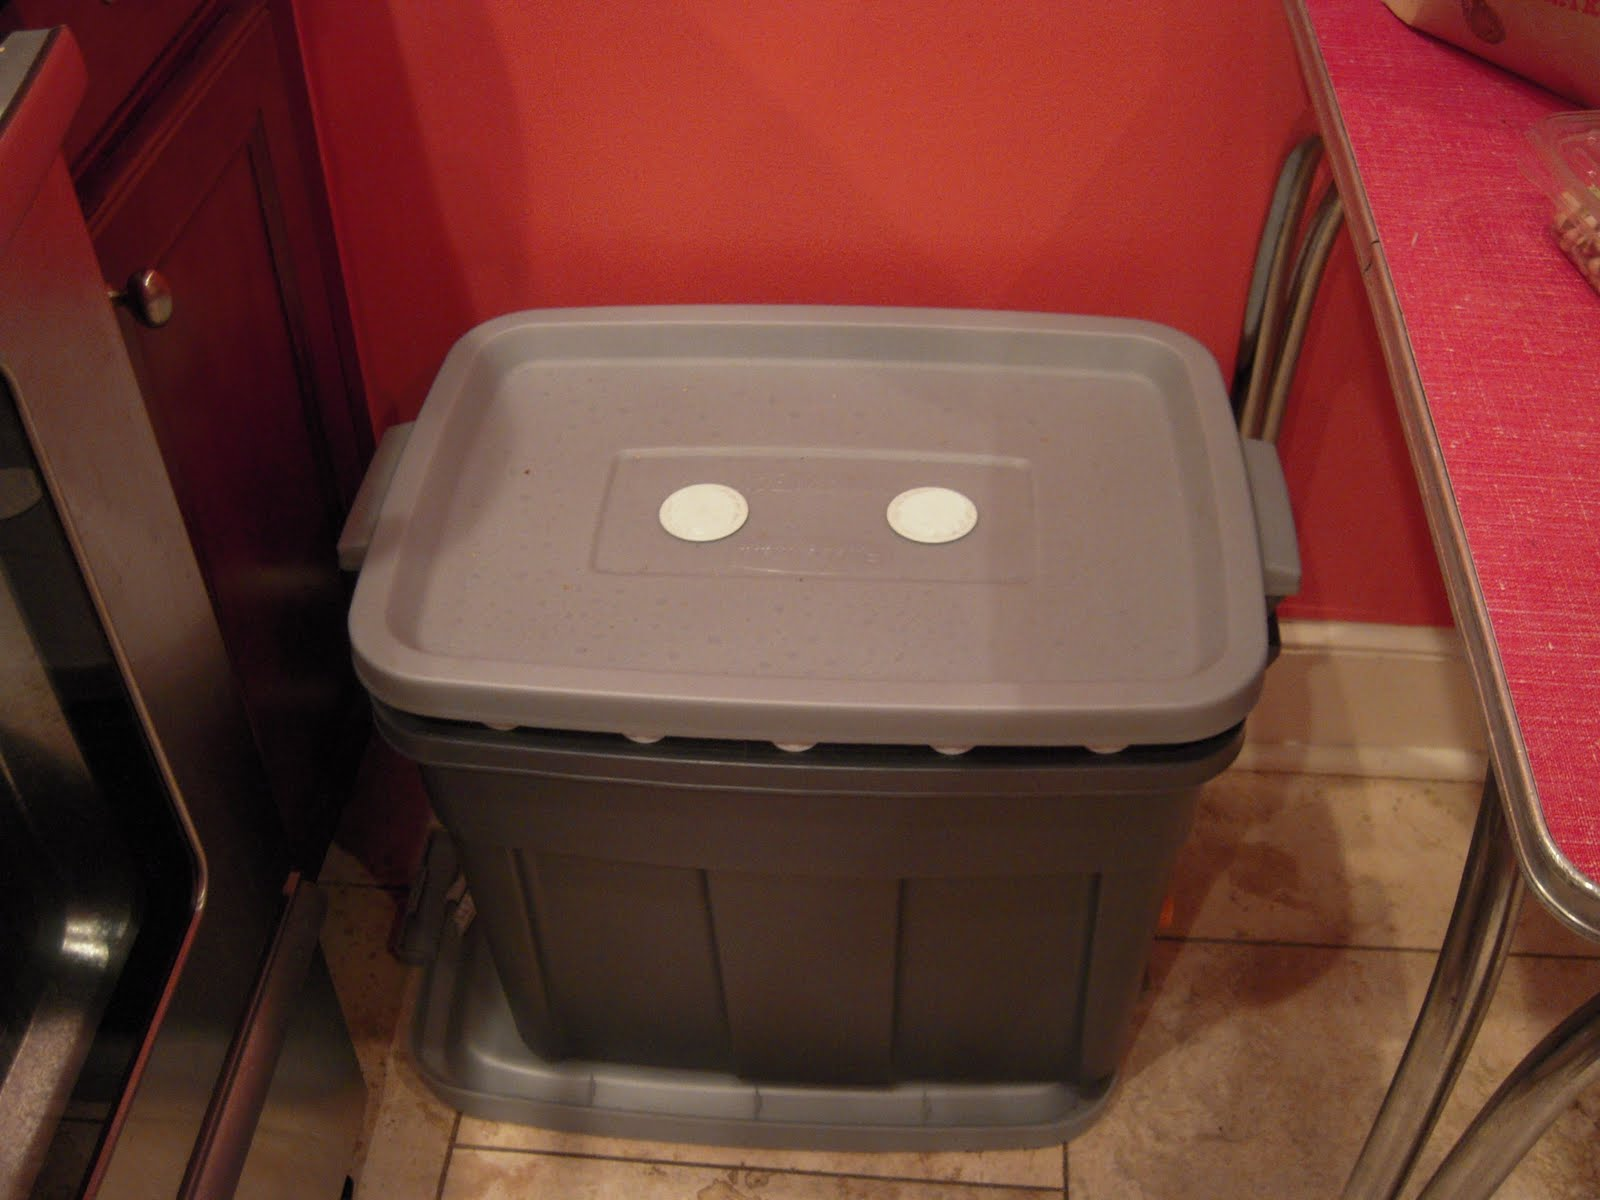 The fascinating Compost bin for kitchen picture